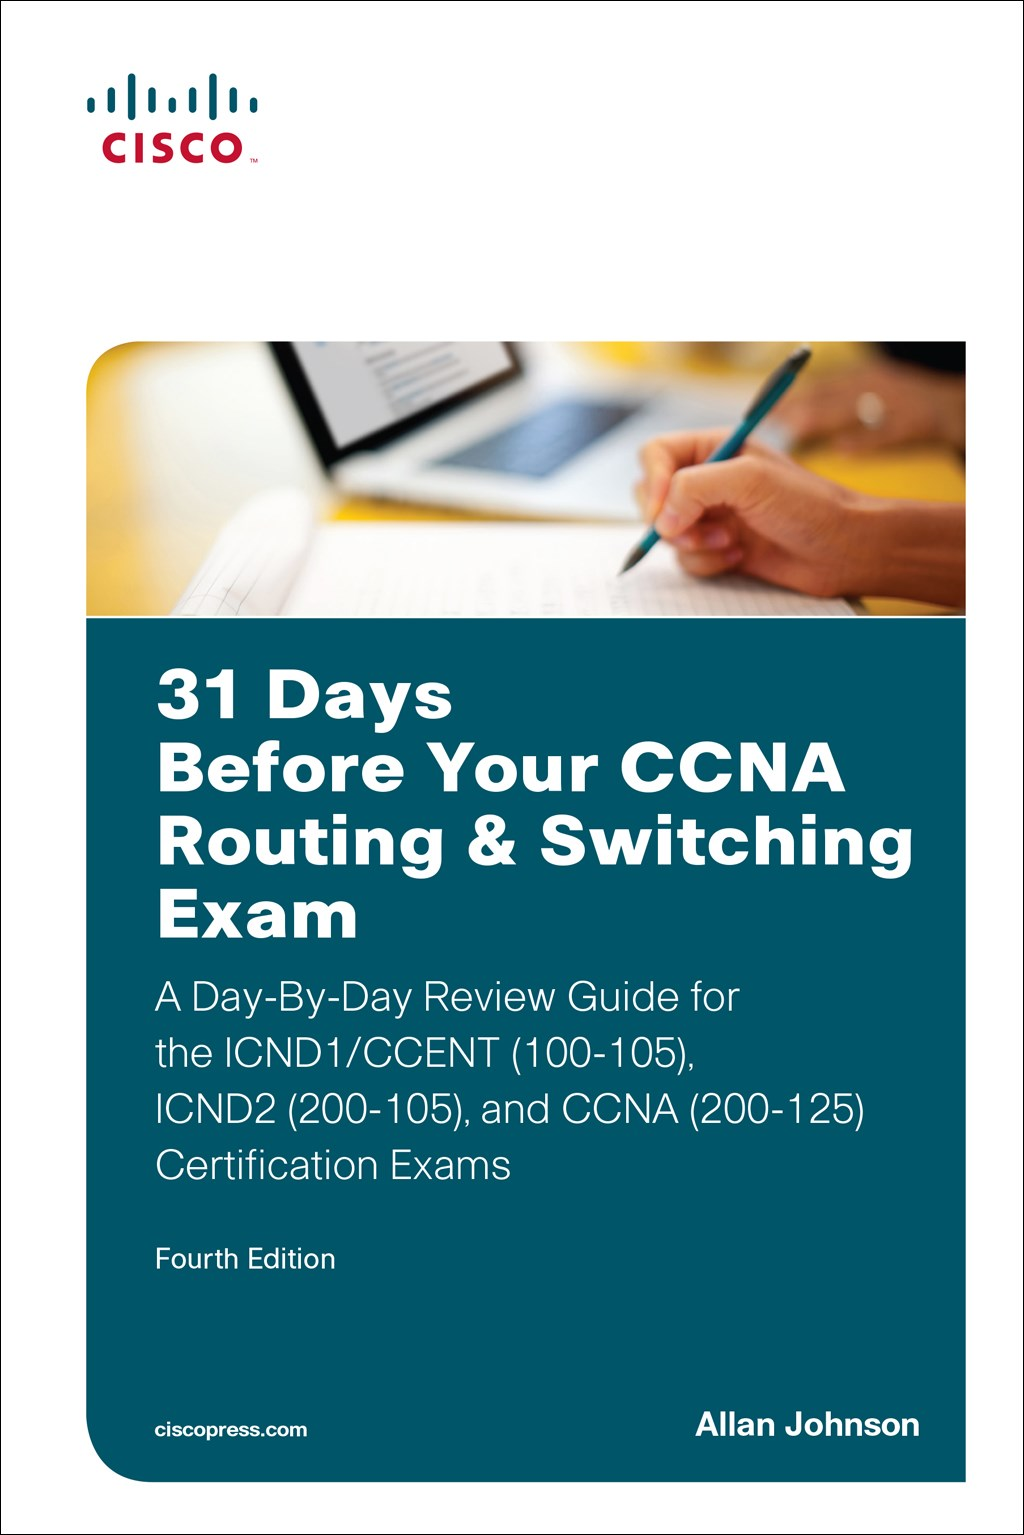 Best Way To Study For CCNA - 101825 - Cisco